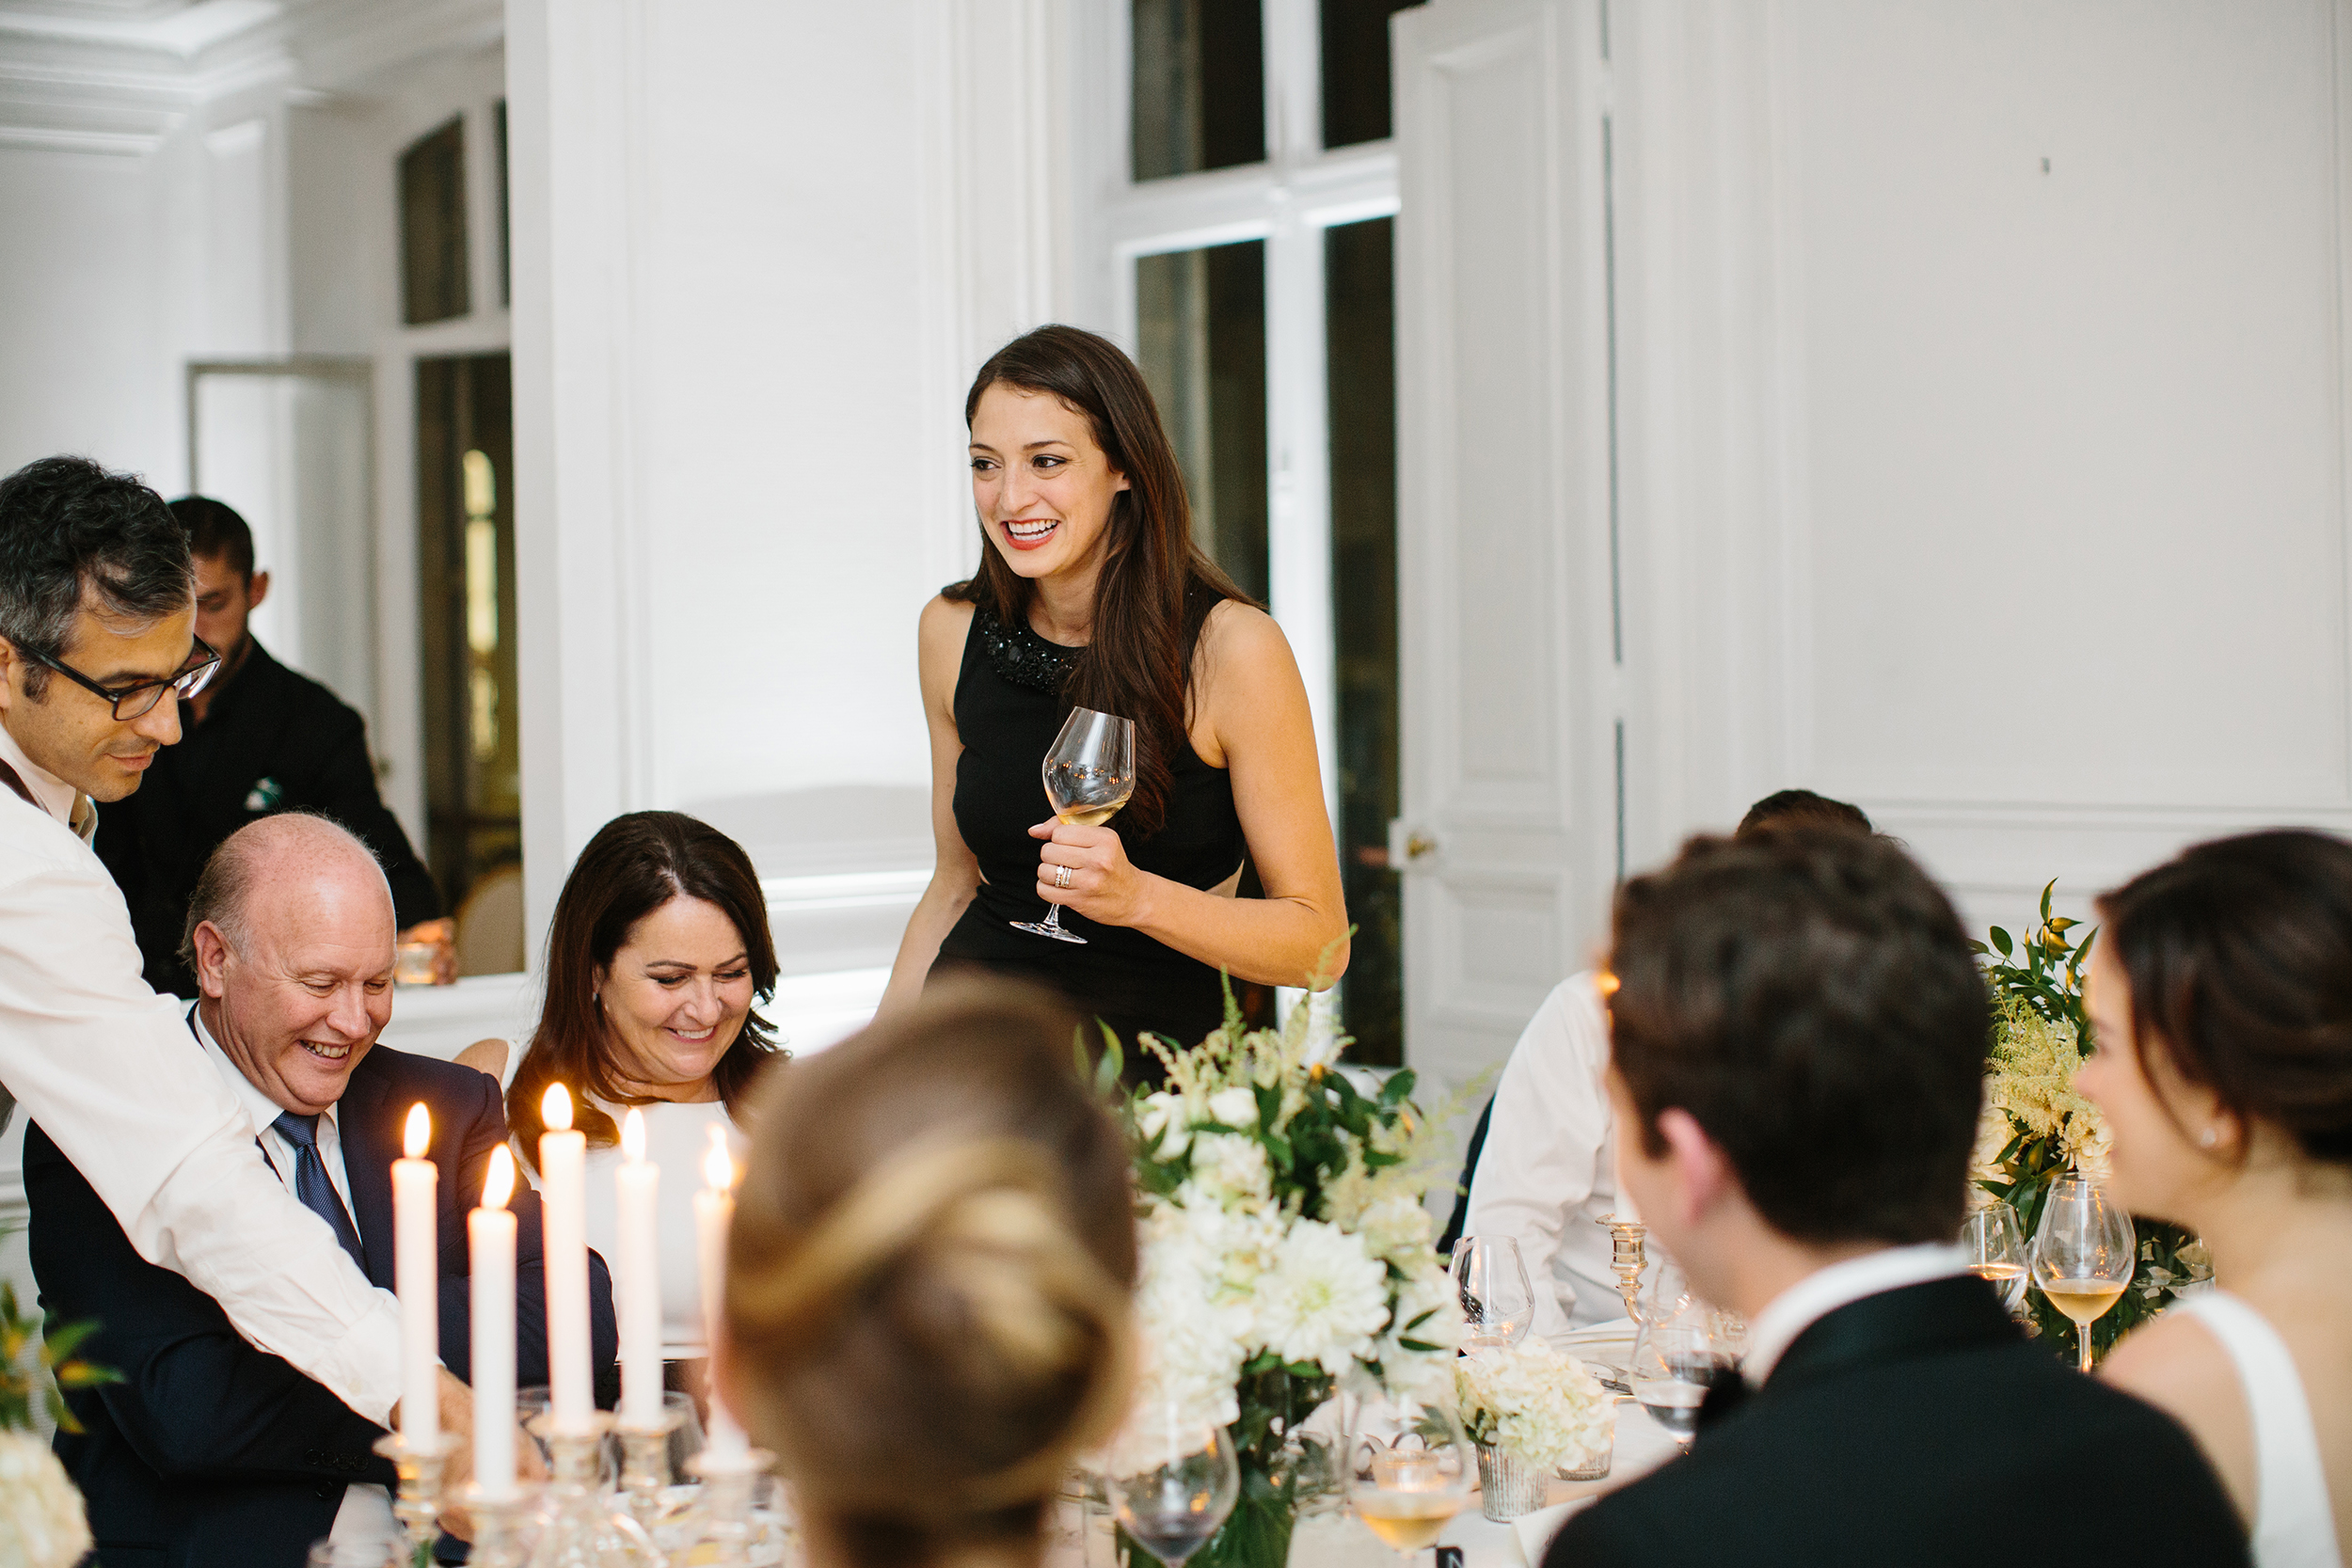 Maid of Honor Speech Template: A Step-by-Step Guide to Writing the Perfect Wedding Toast